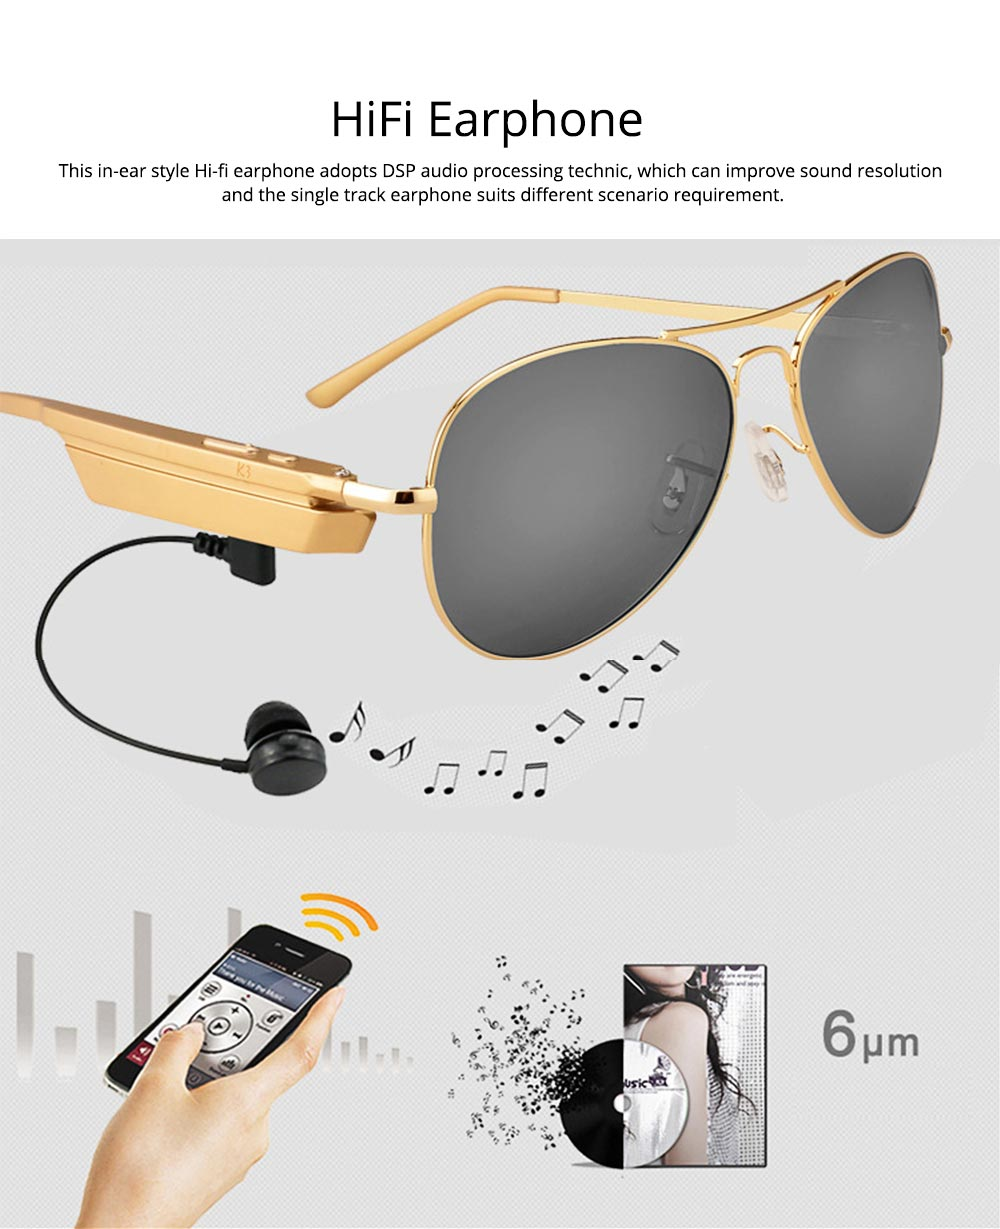 Smart Earphones Bluetooth 4.1 Version Polarized Sunglasses for Music, Broadcast and Phone Calls Long Distance Wireless Connected Smart Earphone 3